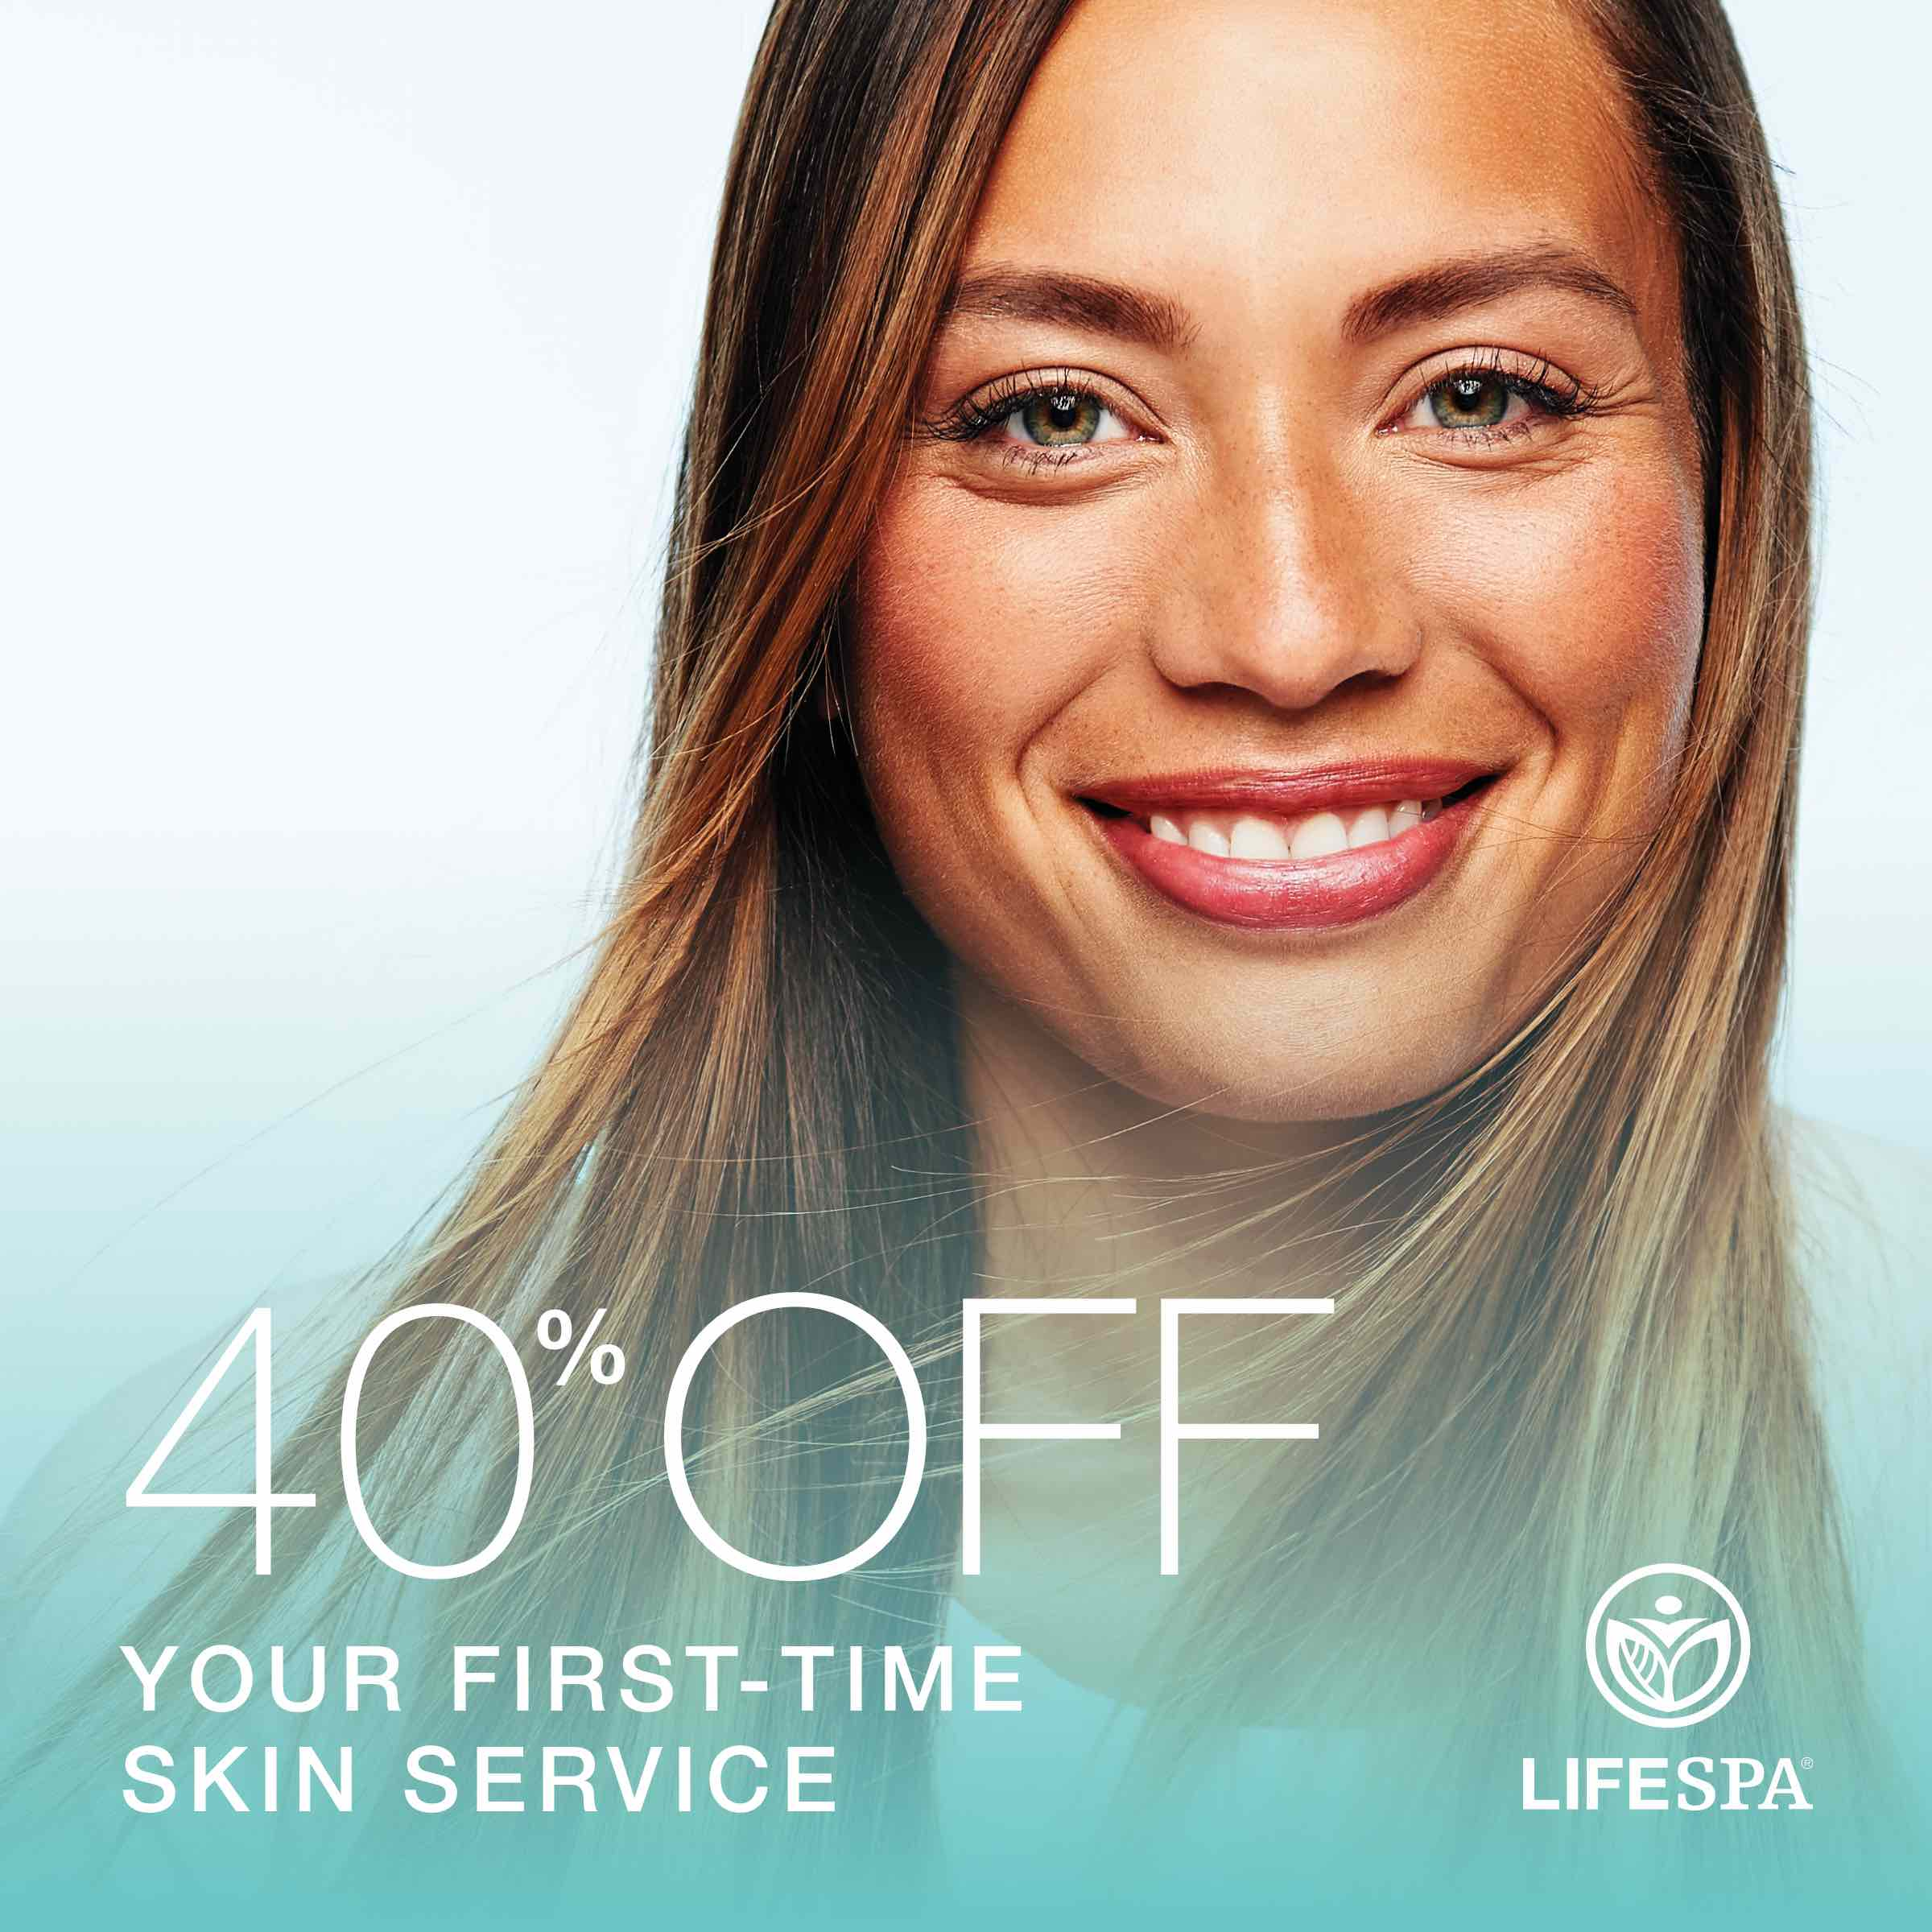 40% off your first-time skin service